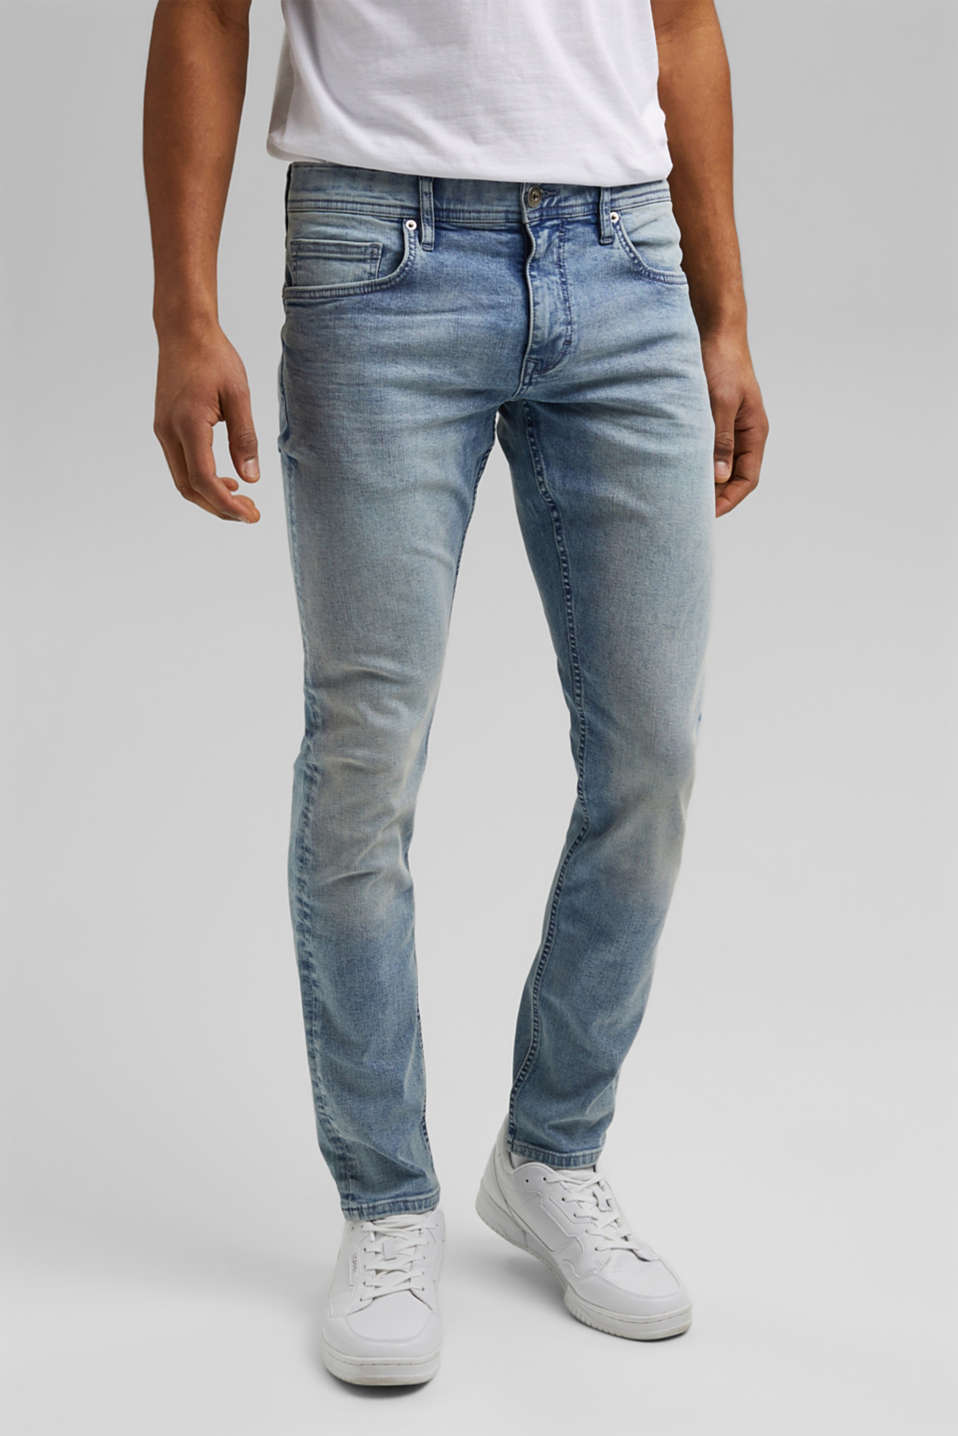 edc - Dynamic denim with super stretch for comfort